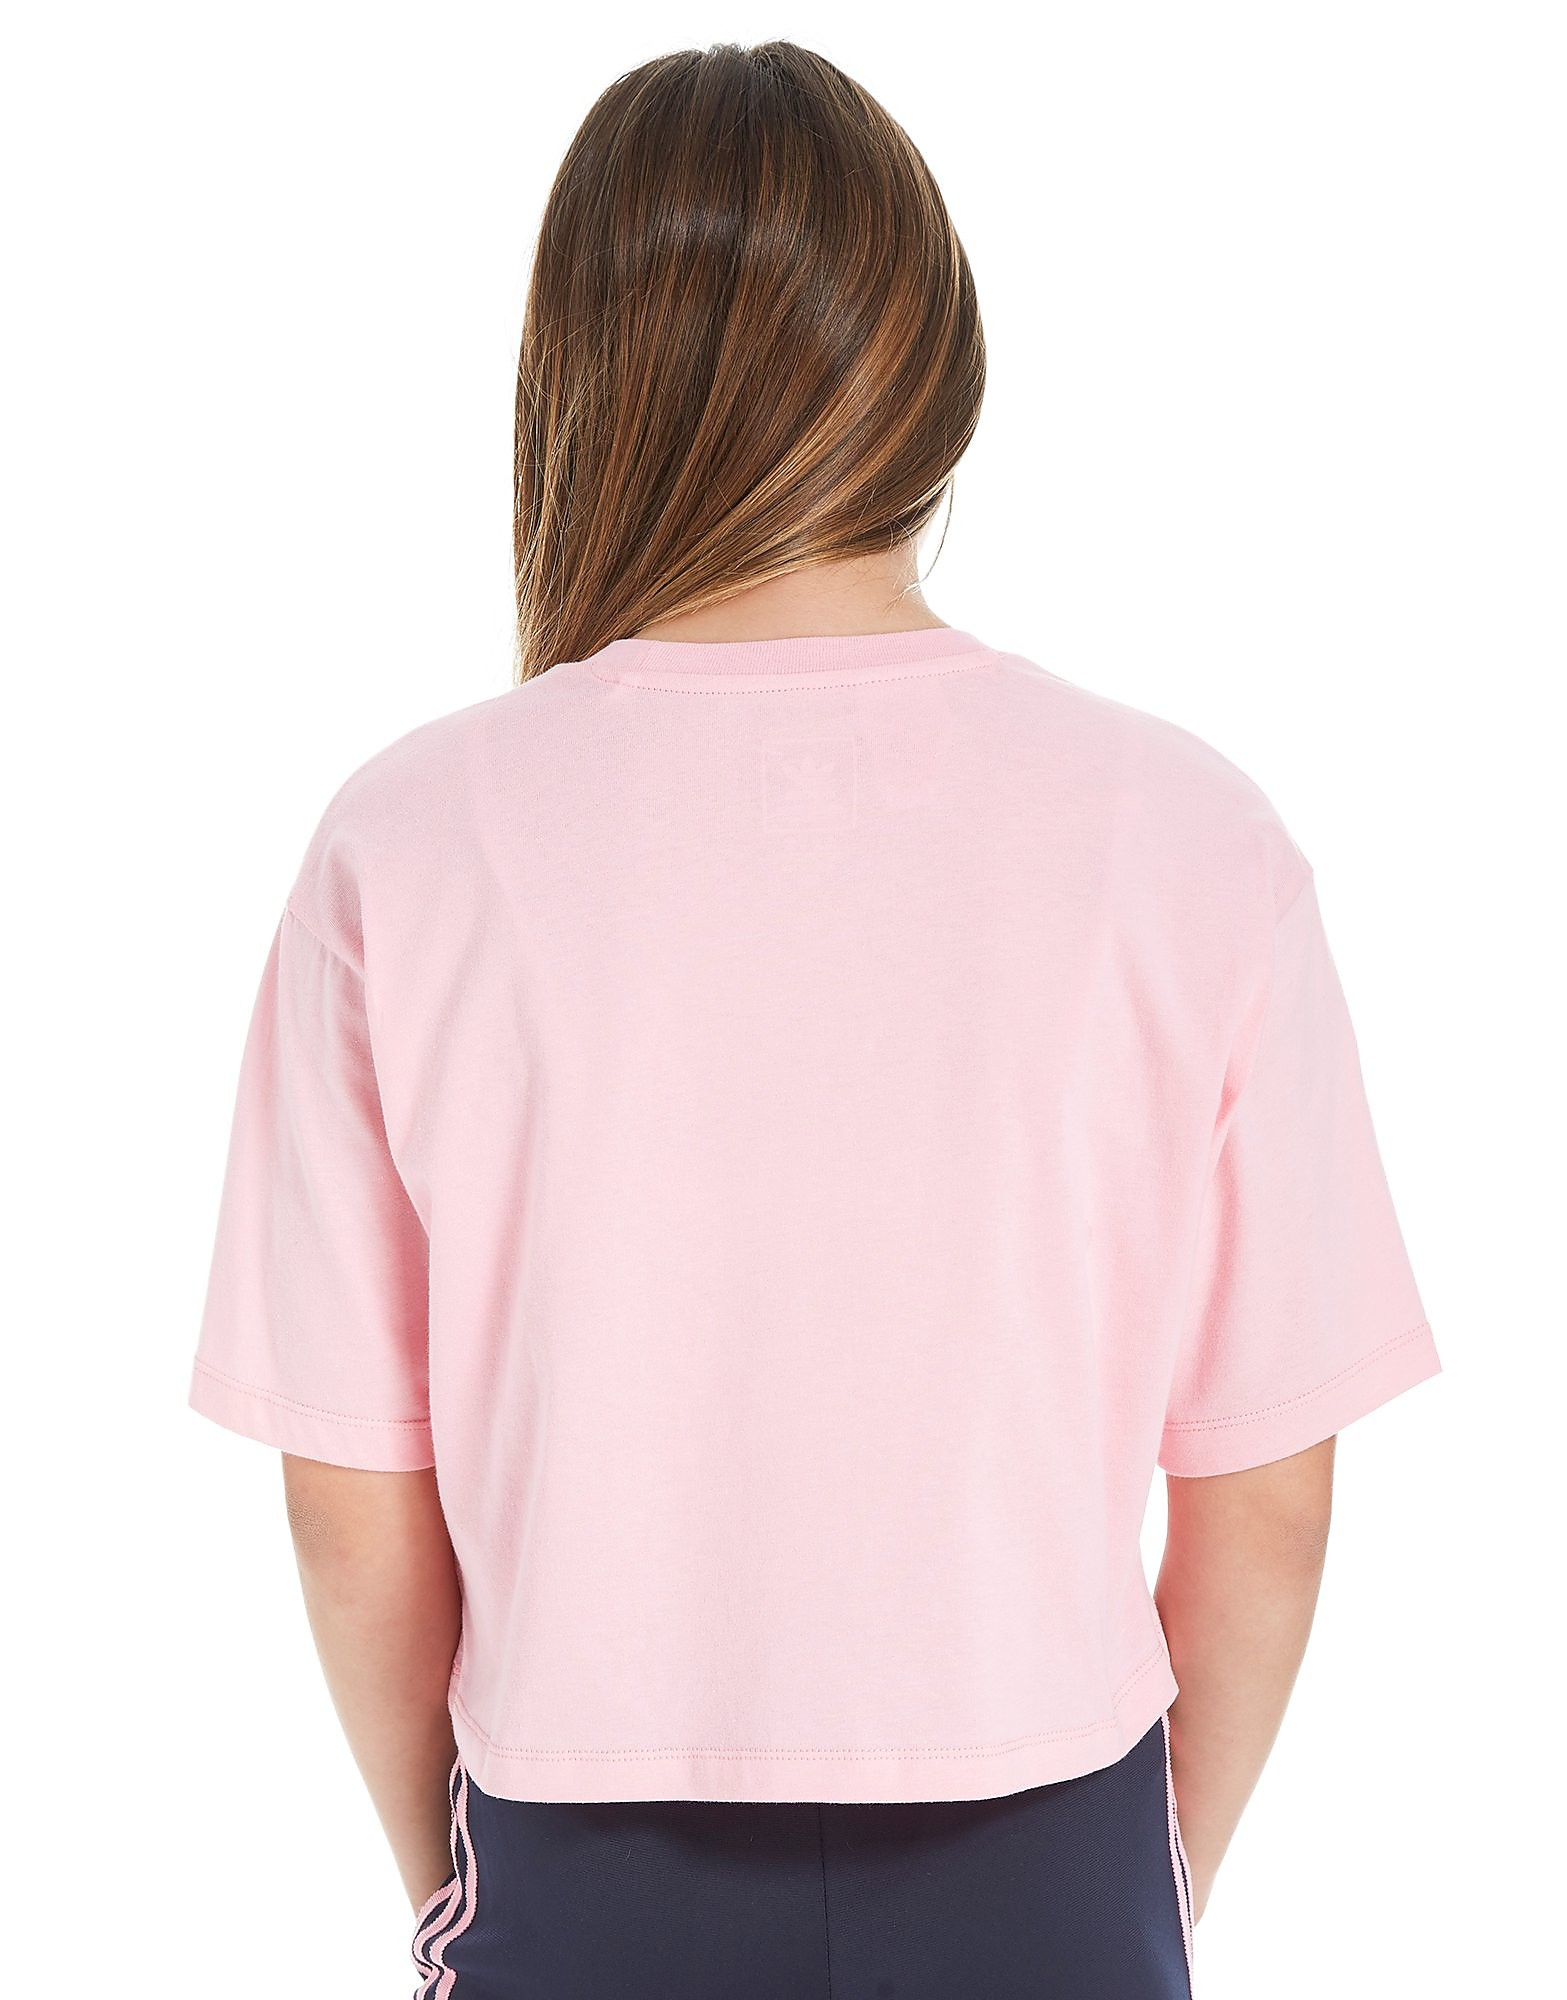 adidas Originals Girl's Trefoil Crop T-Shirt Kinderen